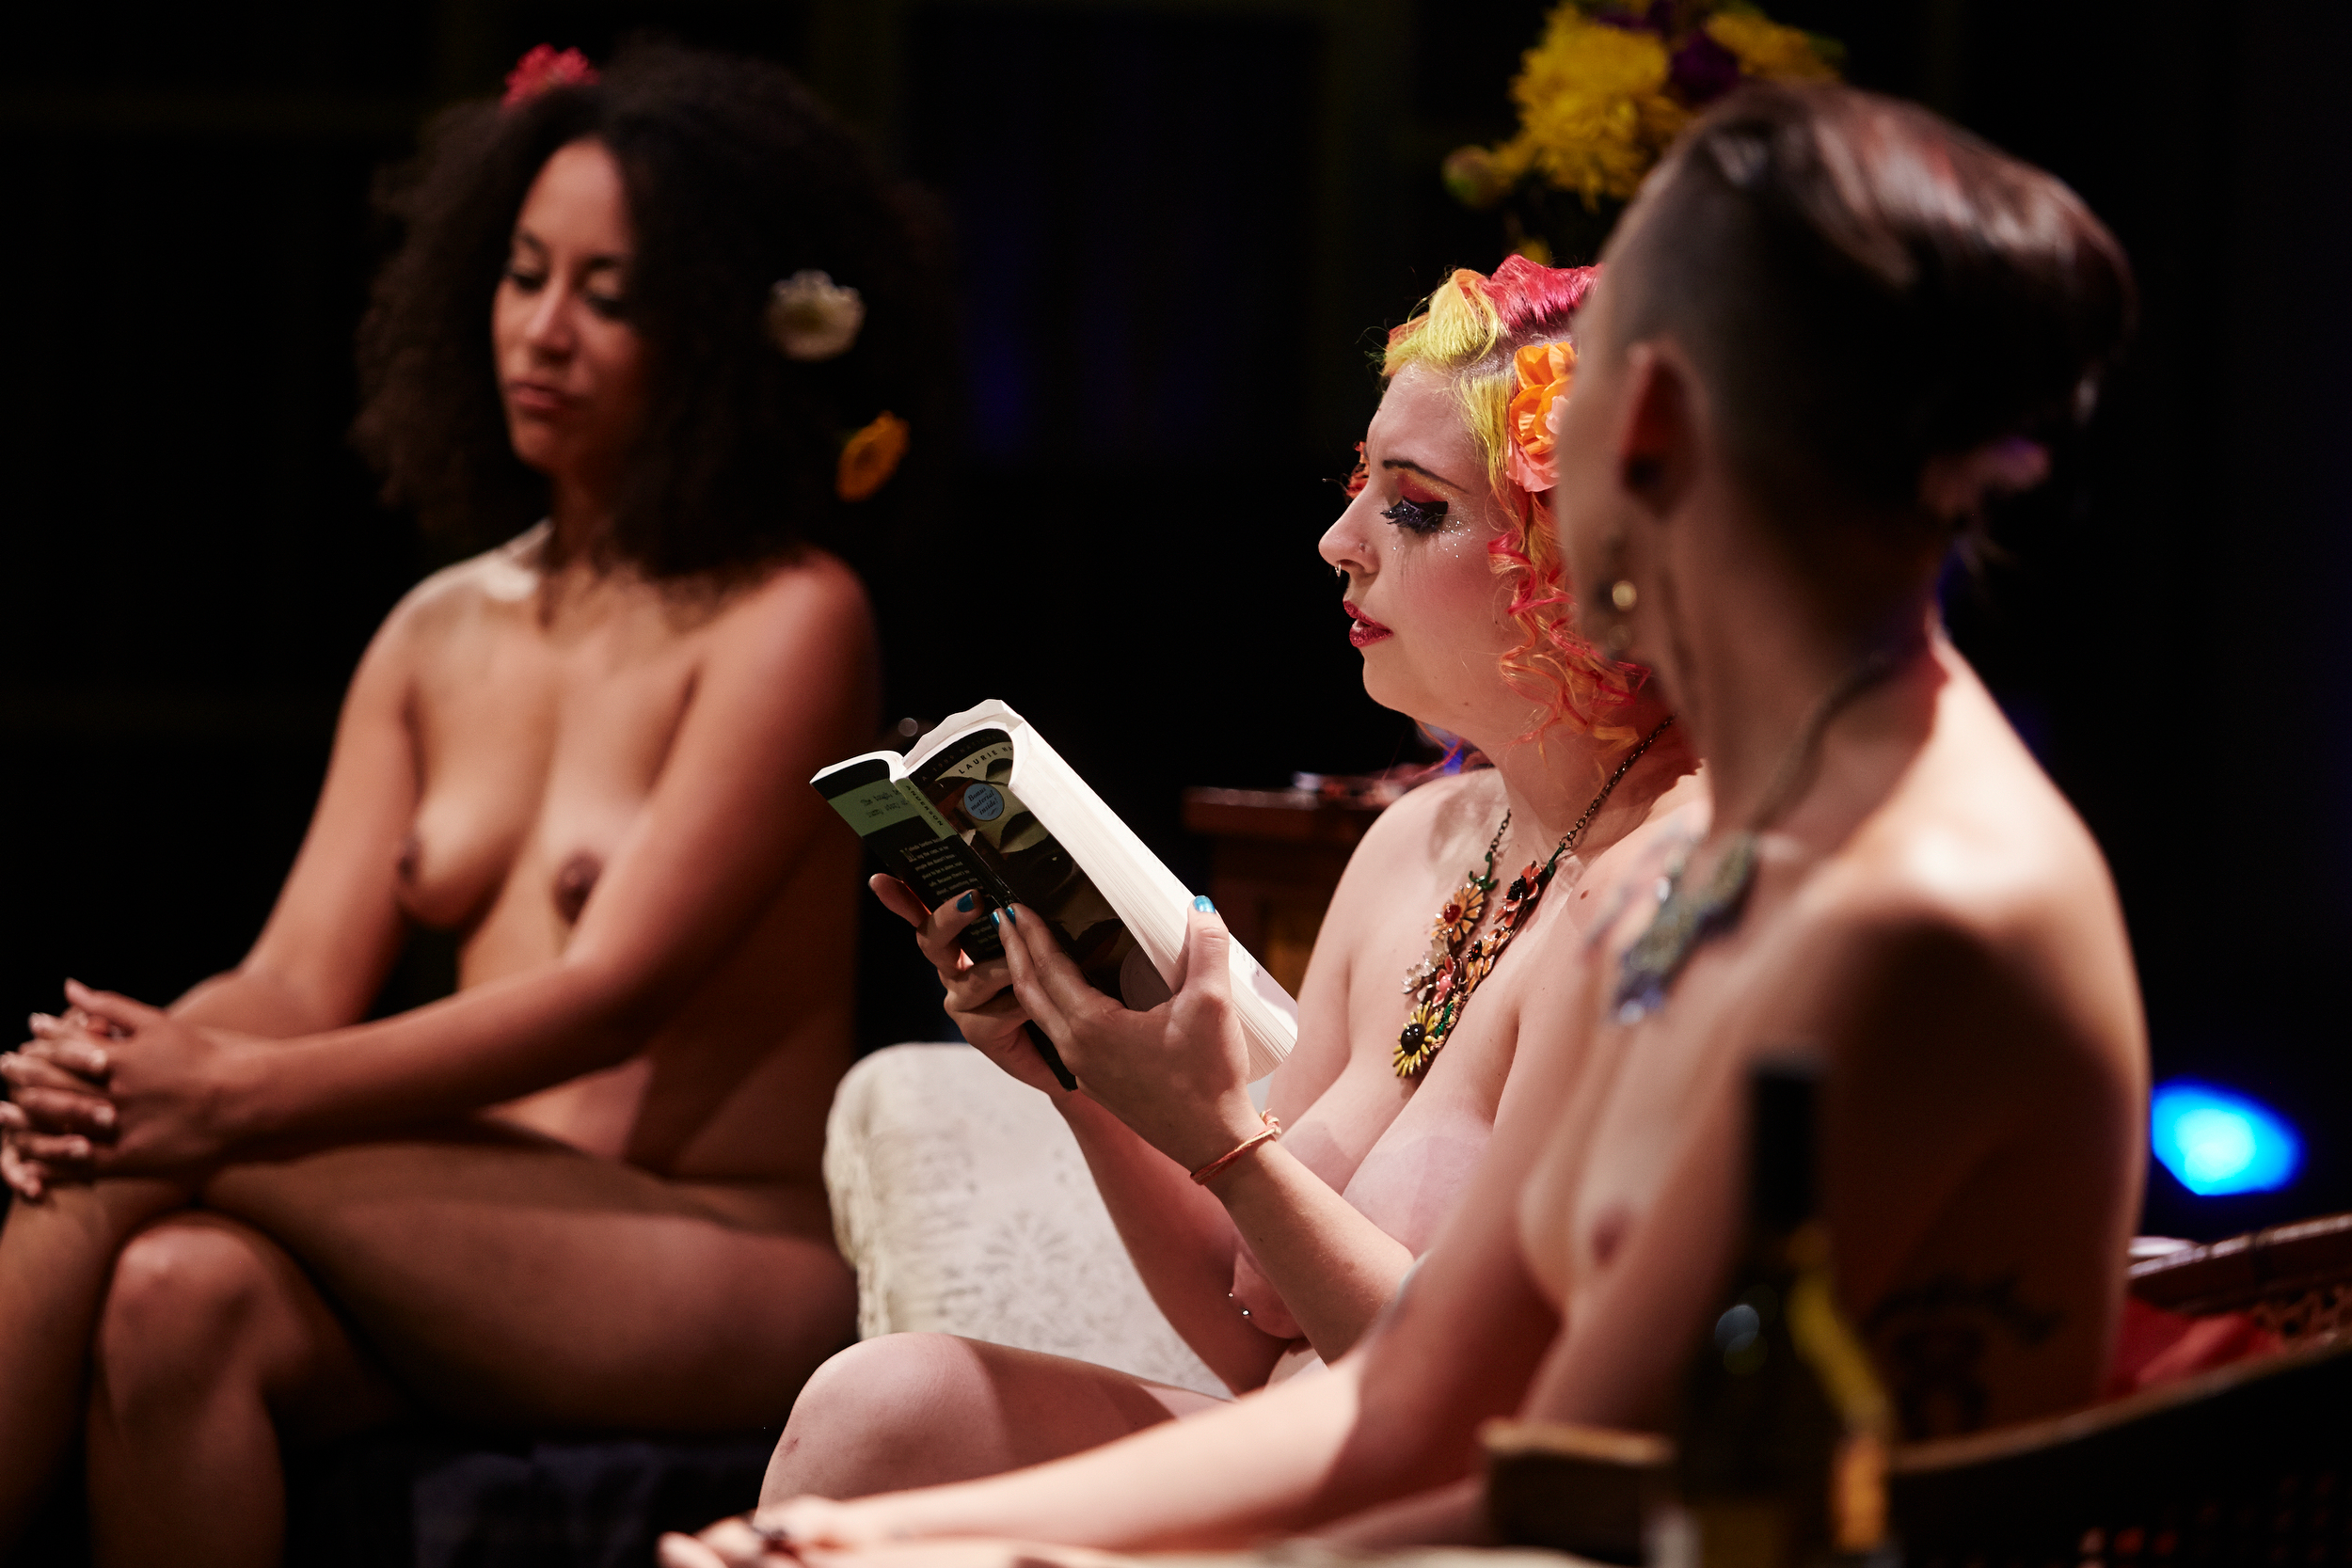 Girls reading naked